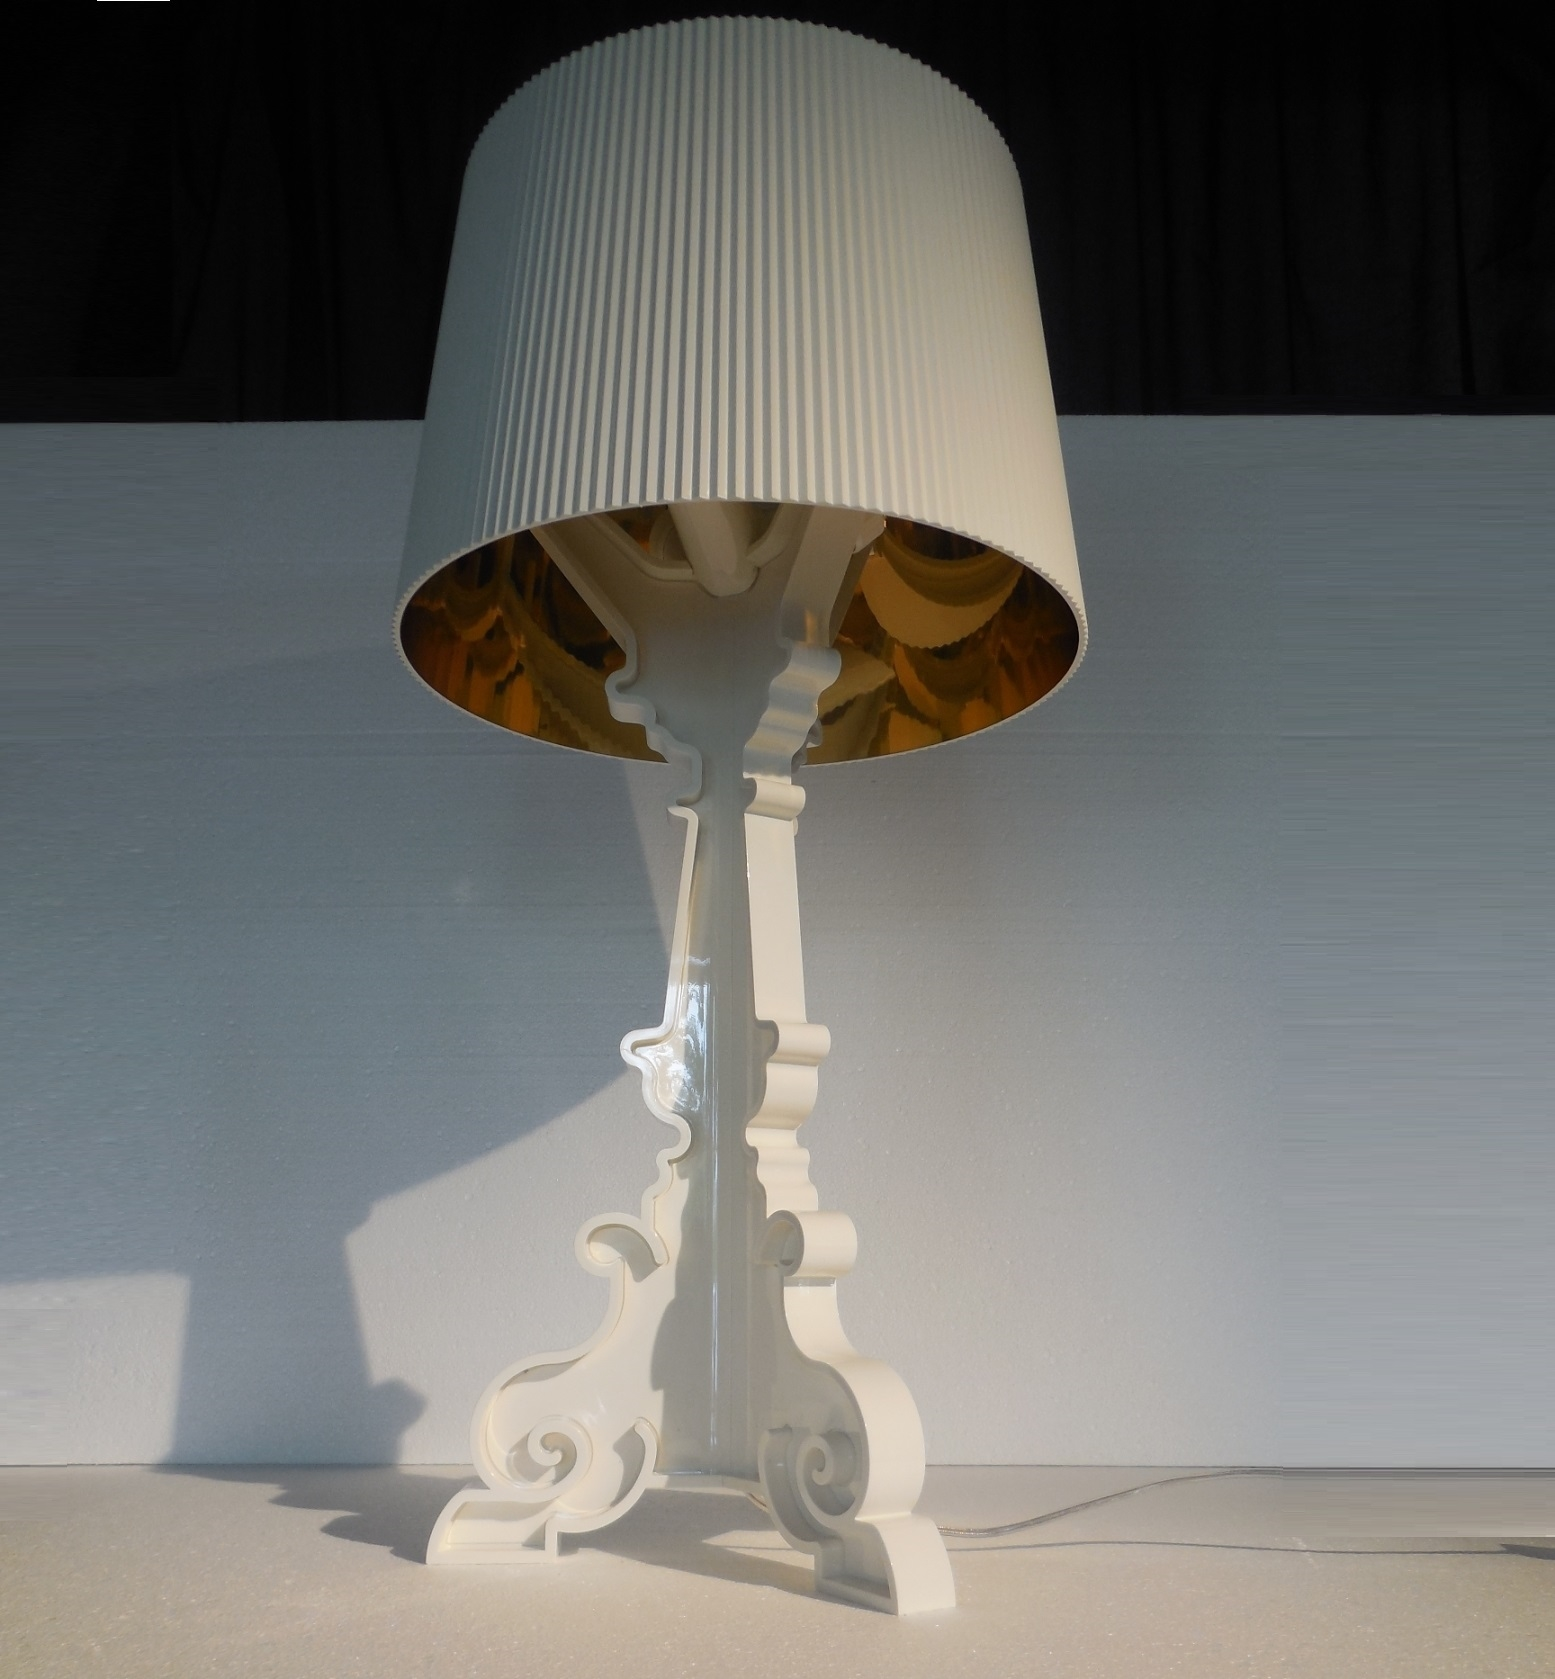 Illuminazione kartell 9076 lampada bourgie white lampada for Lampade kartell outlet